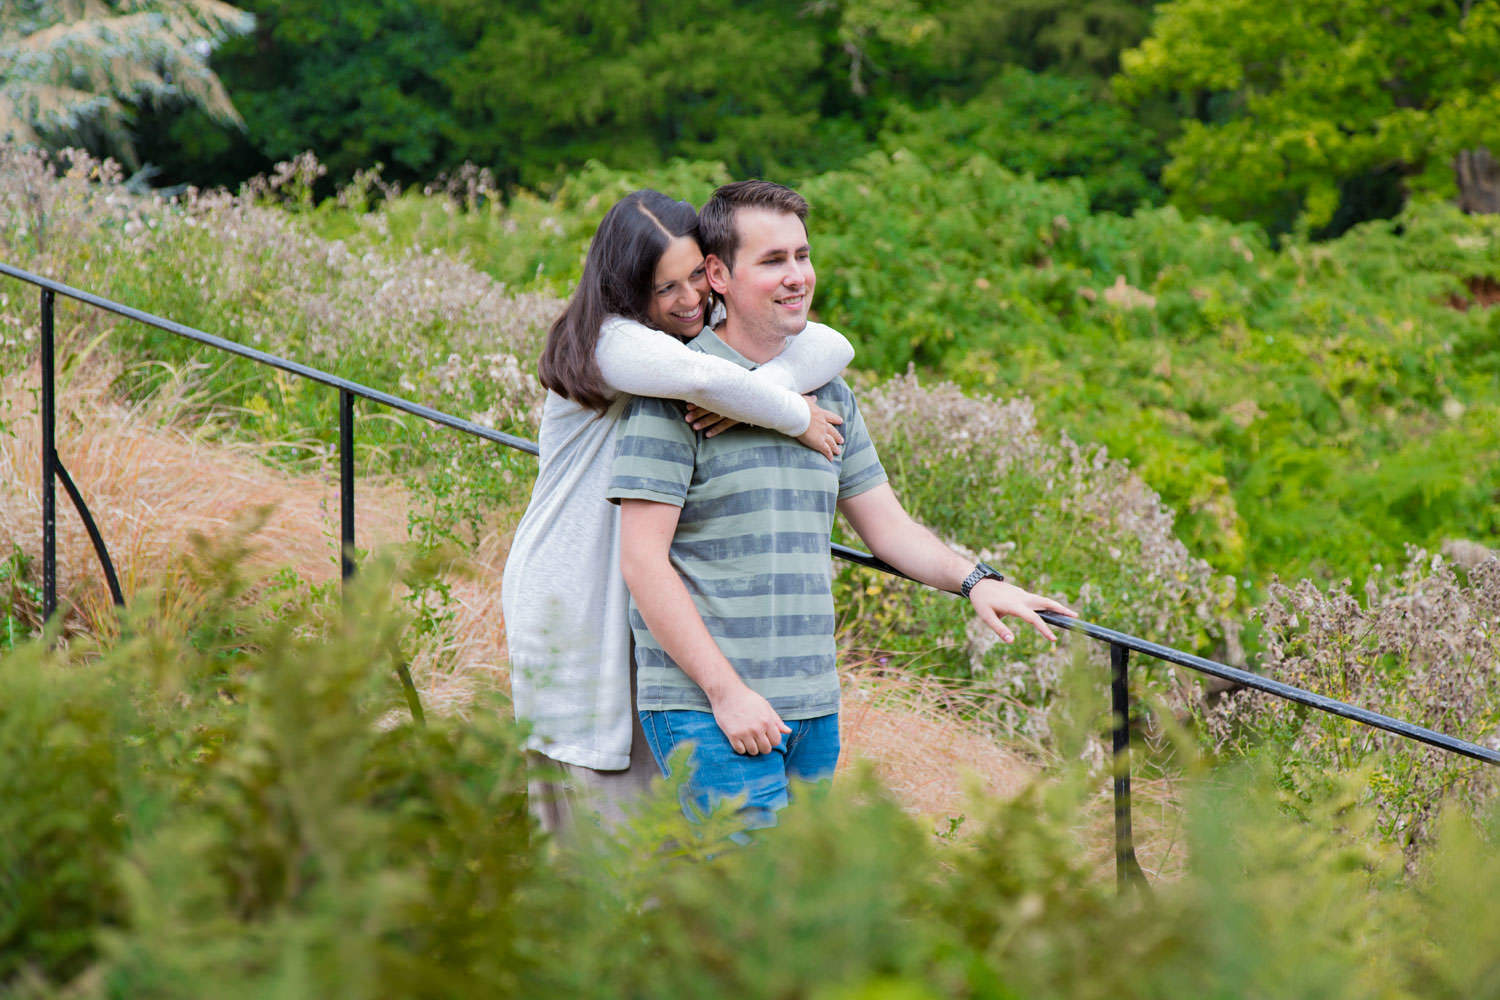 25-Hylands Park couples session by Marc Godfree Photography